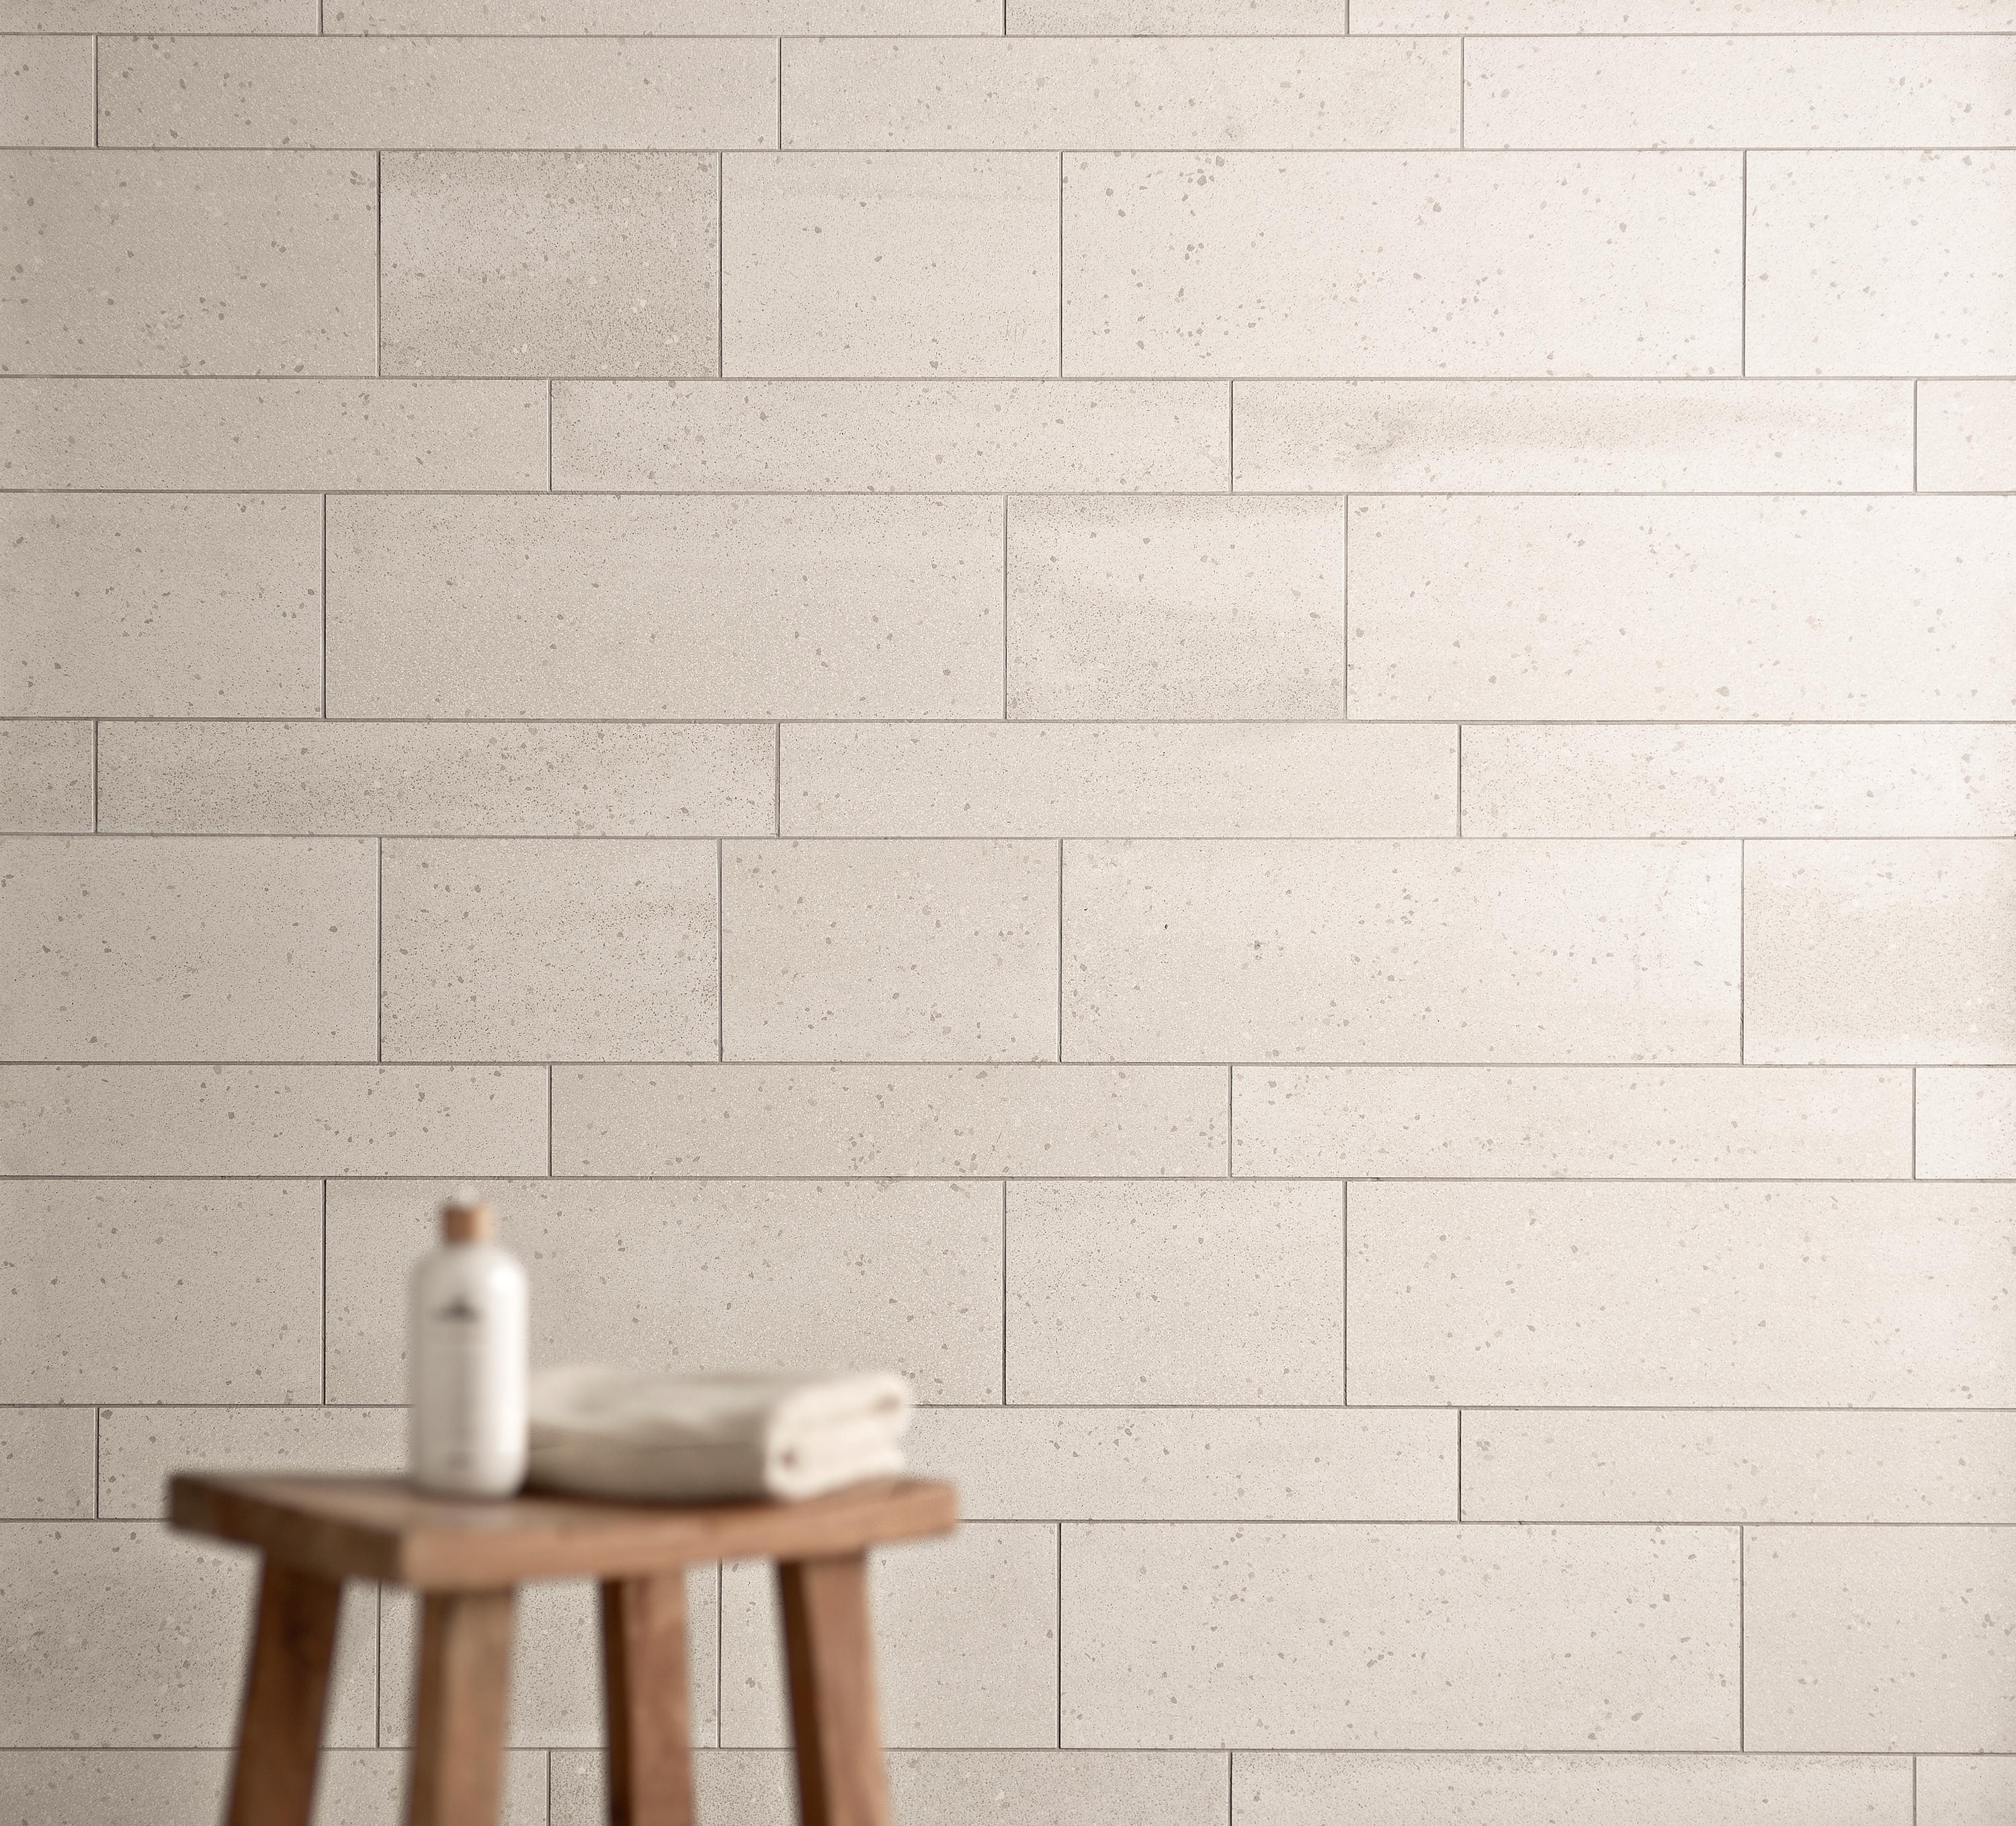 MOSA SOLIDS Ceramic tiles from Mosa